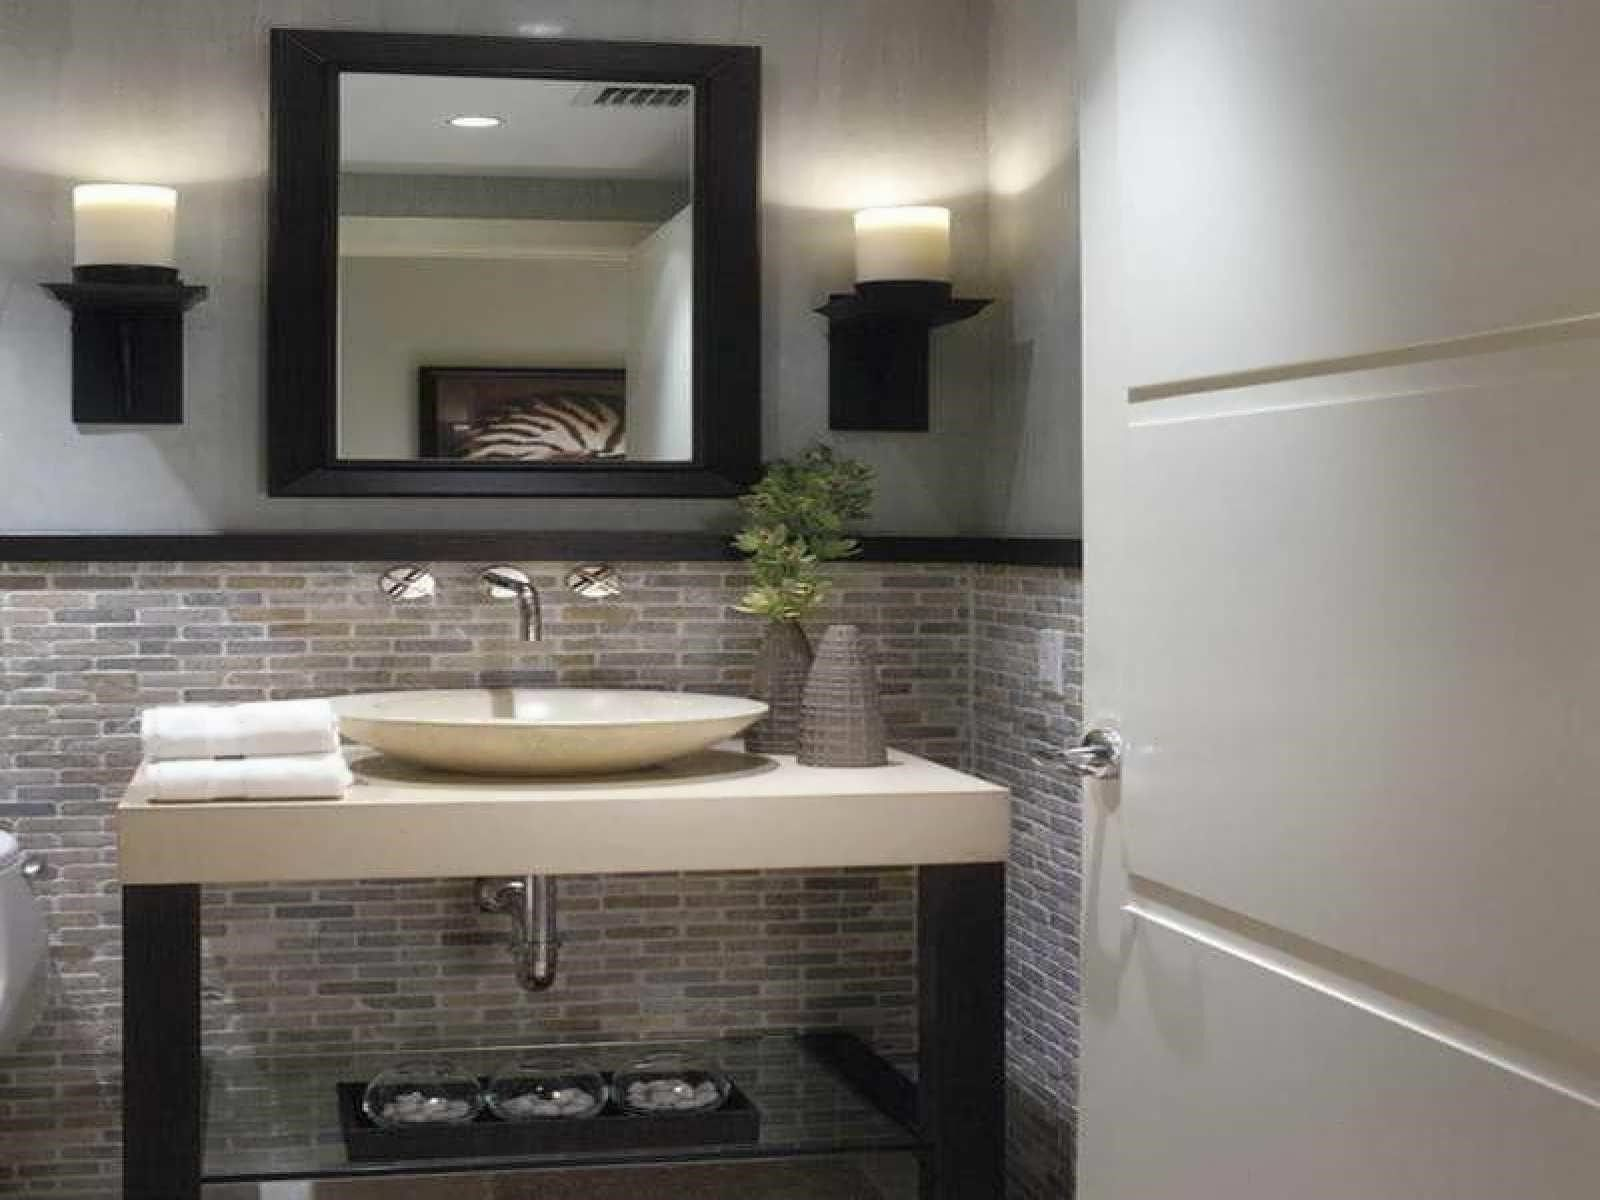 Half bathroom ideas gray - Half Bathroom Ideas Gray